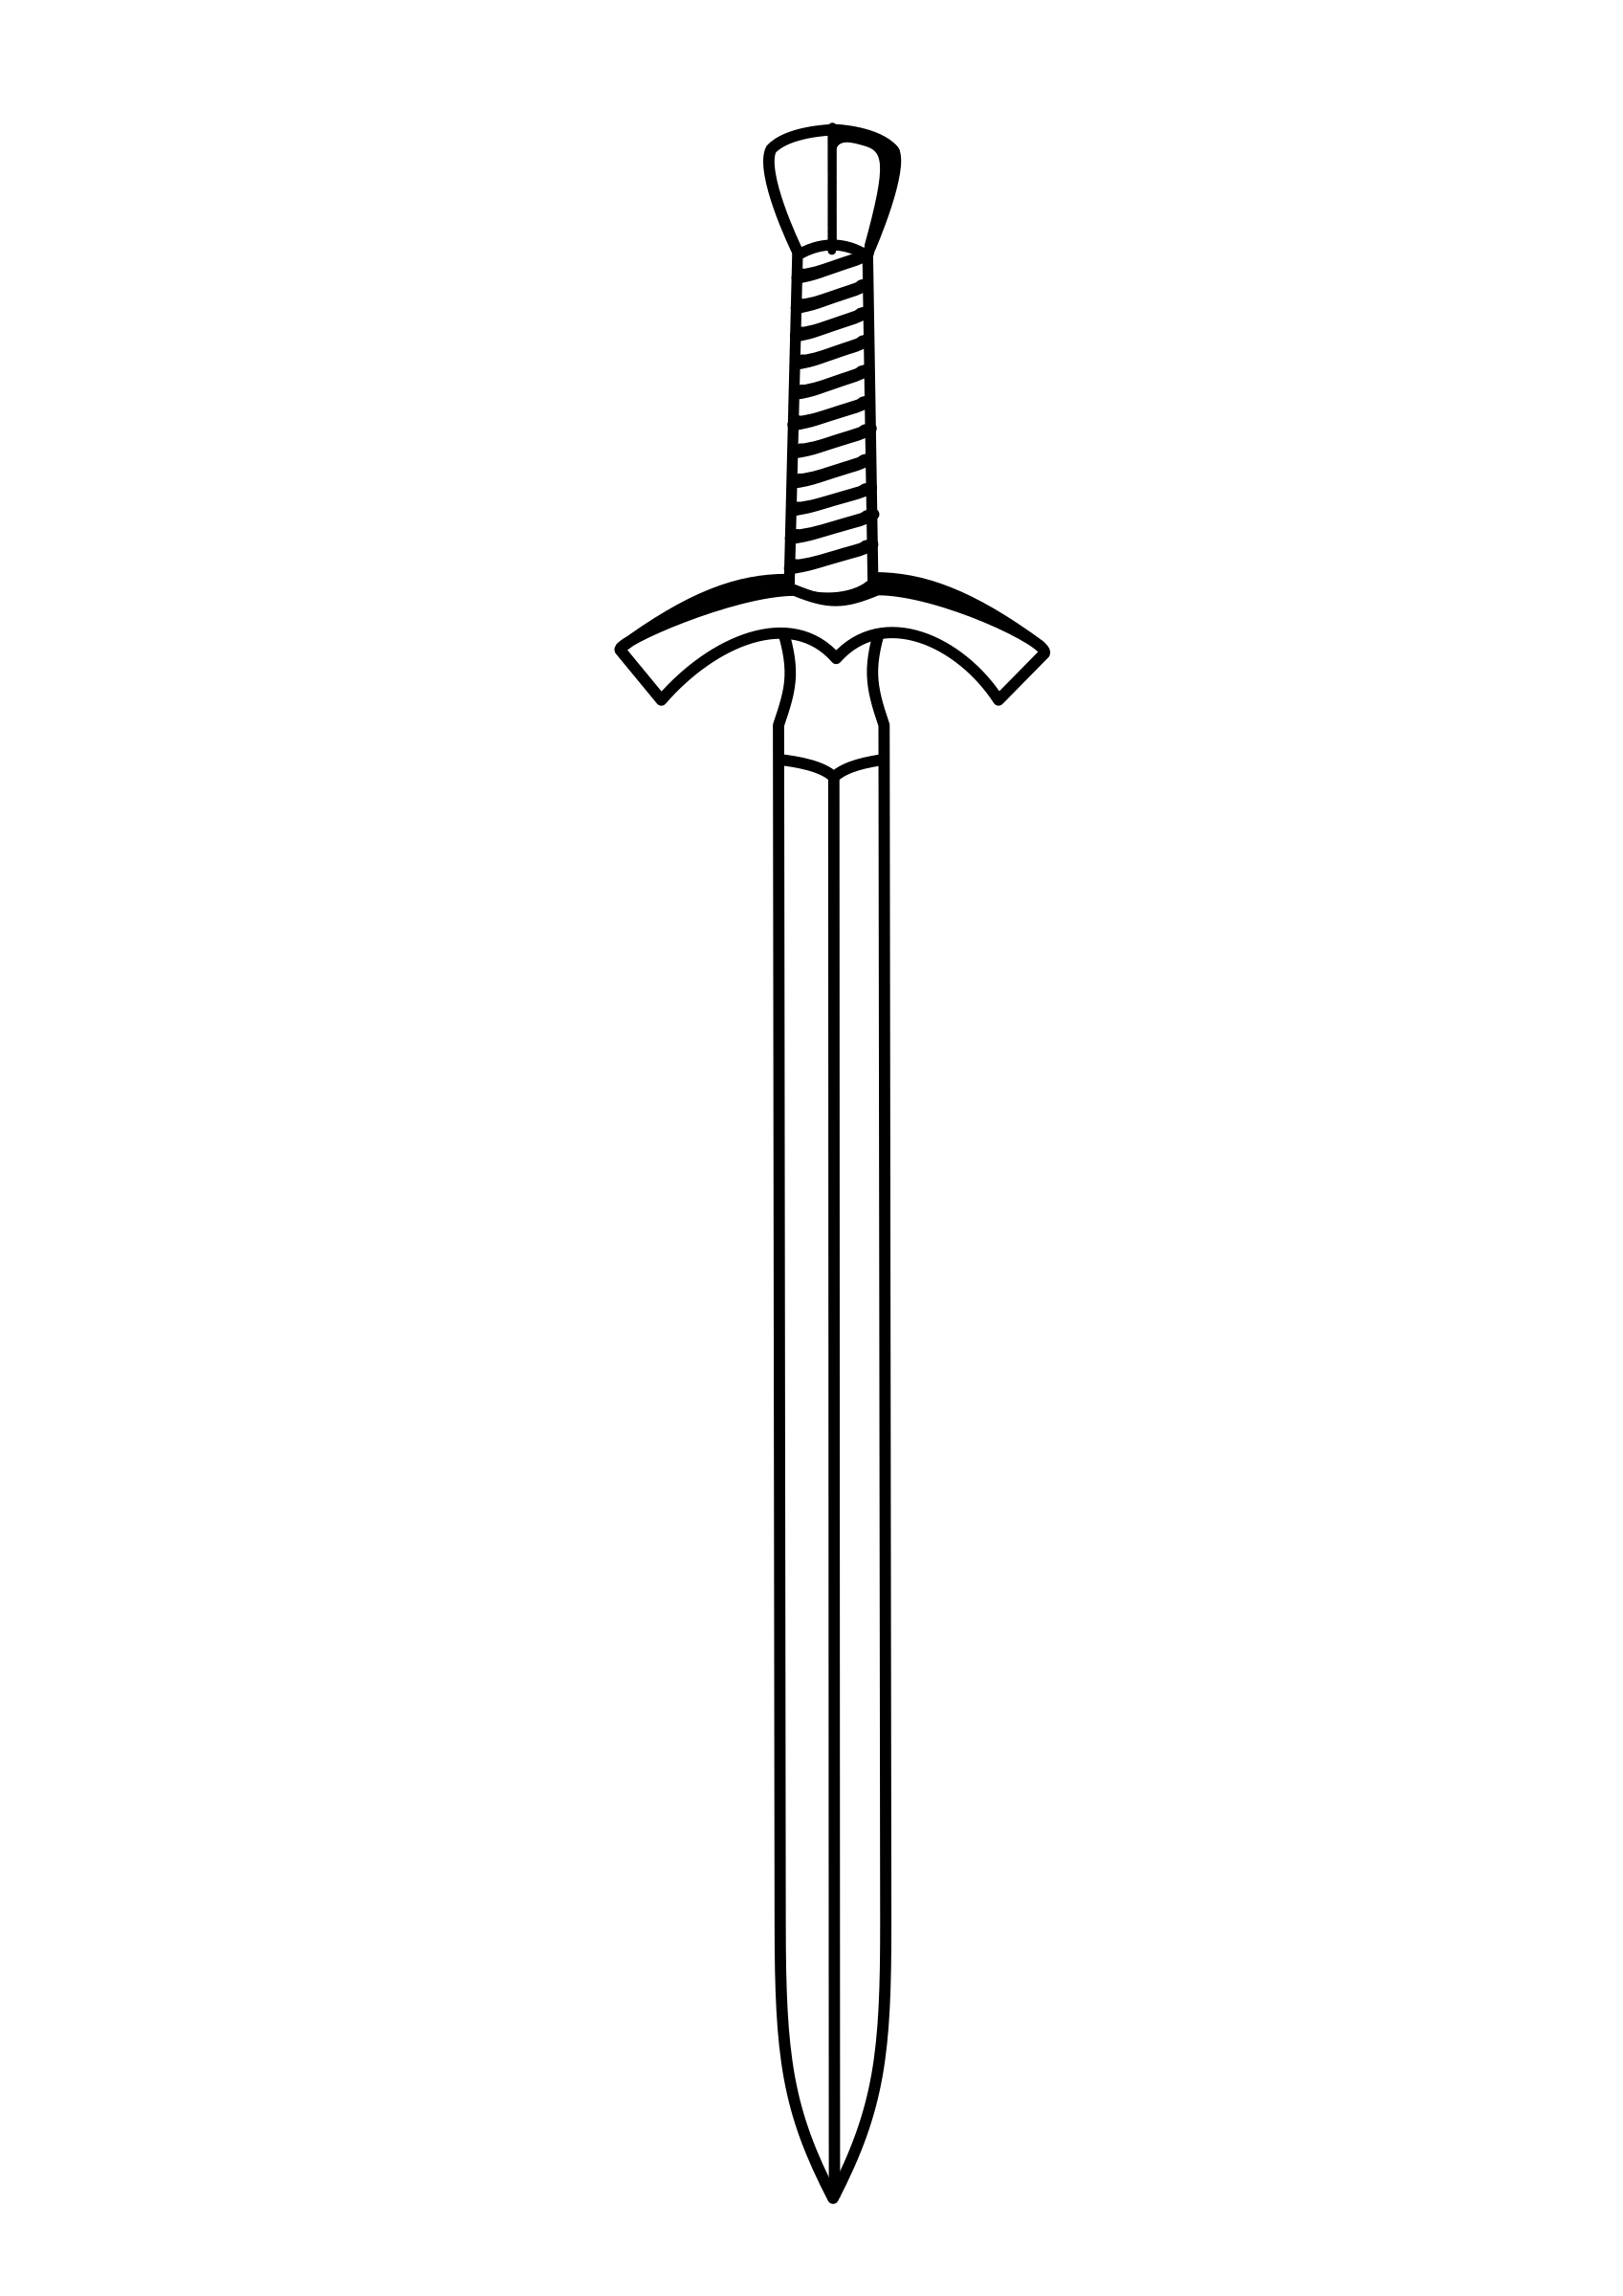 Cross sword clipart free library 28+ Collection of Sword Clipart Png | High quality, free cliparts ... free library